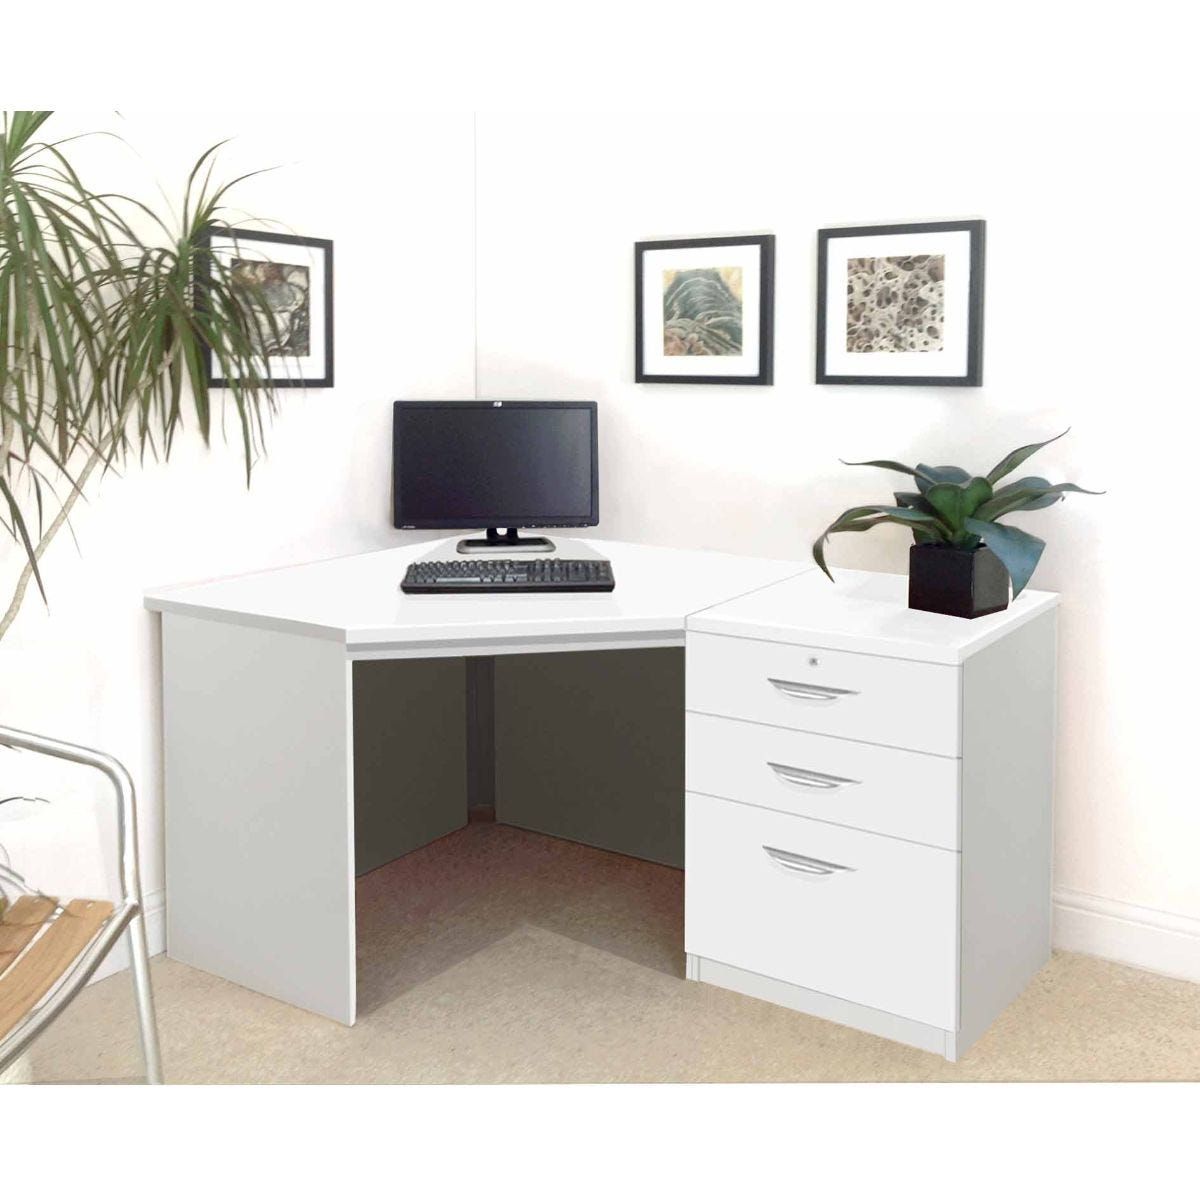 R White Home Office Corner Desk with Three Drawers, White